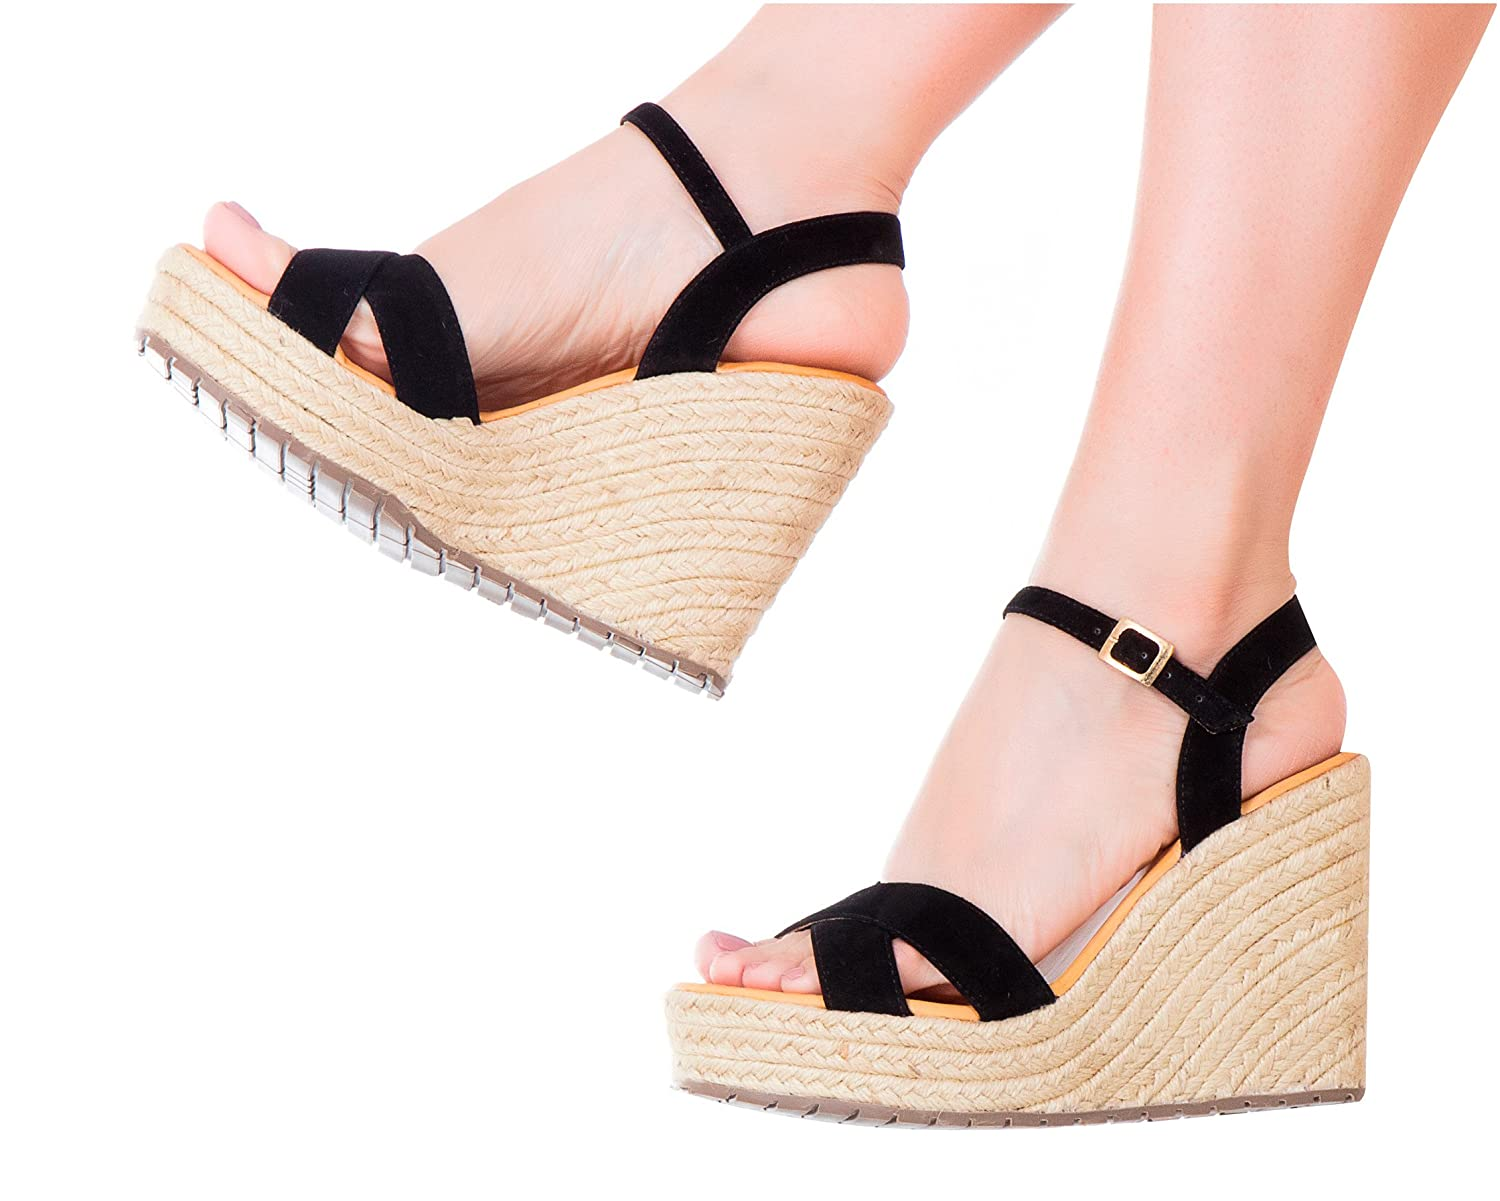 Vida Leather Women Ankle Tie Platform Espadrille Sandals | Sandalias de DAMA B0755HMRYR 9 B(M) US|Black